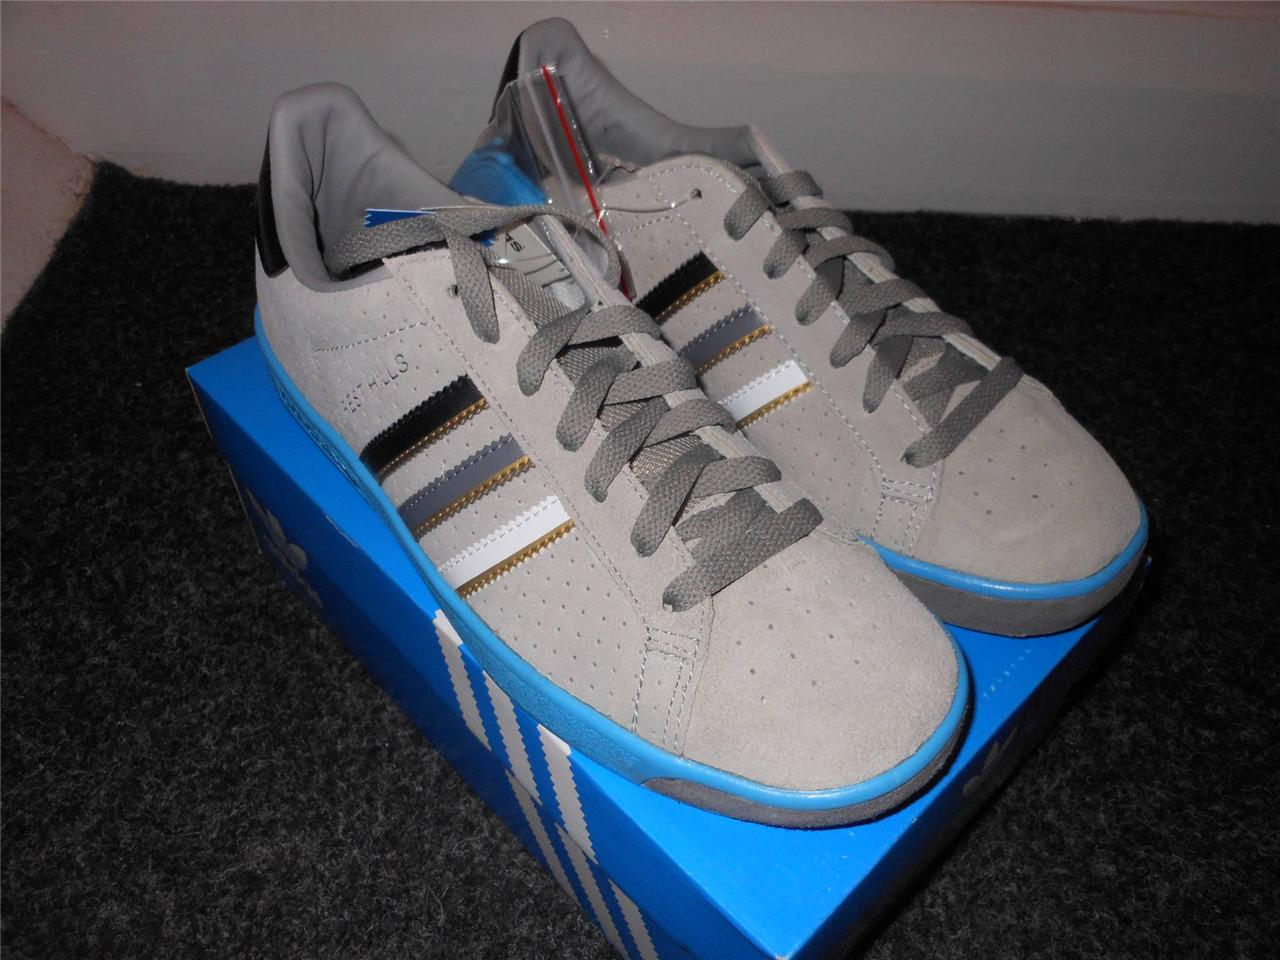 Mens-white-or-grey-adidas-FOREST-HILLS-trainer-NEW-BOXED-size8-9-10-IDEAL-GIFT